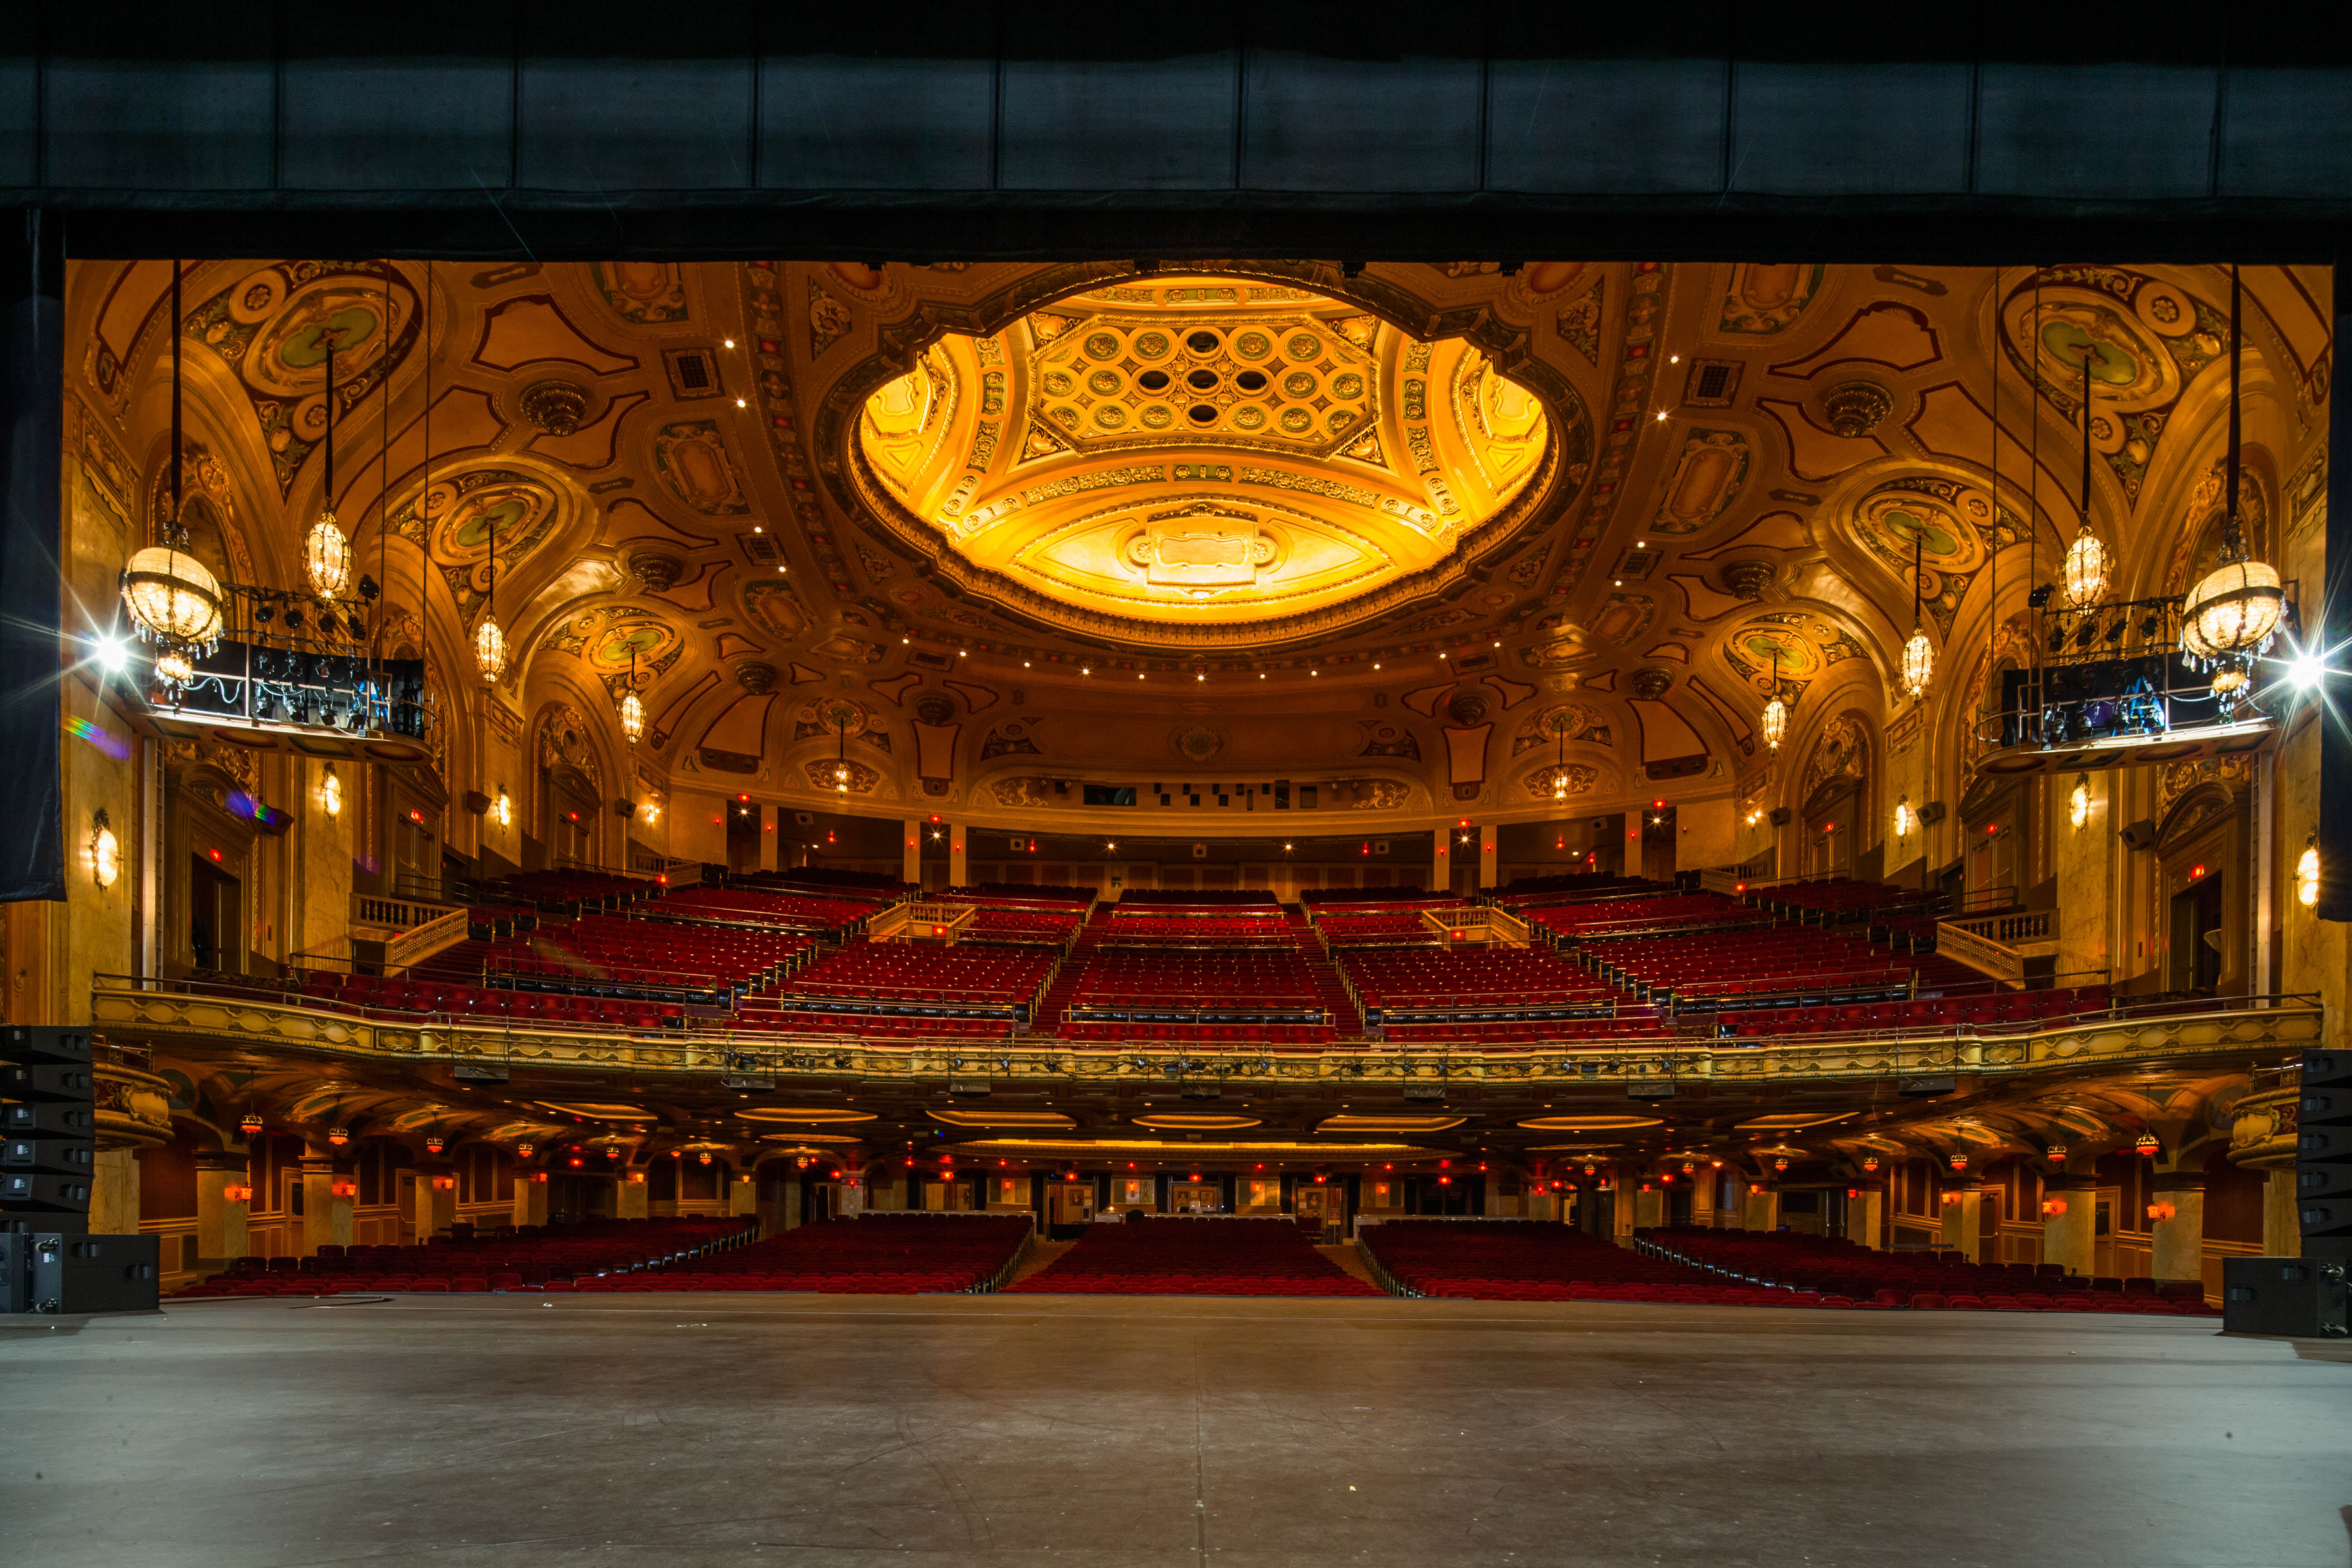 The actor's view of the 3,019-seat auditorium in Shea's Performing Arts Center can be daunting when the house lights are up. (Derek Gee/Buffalo News)